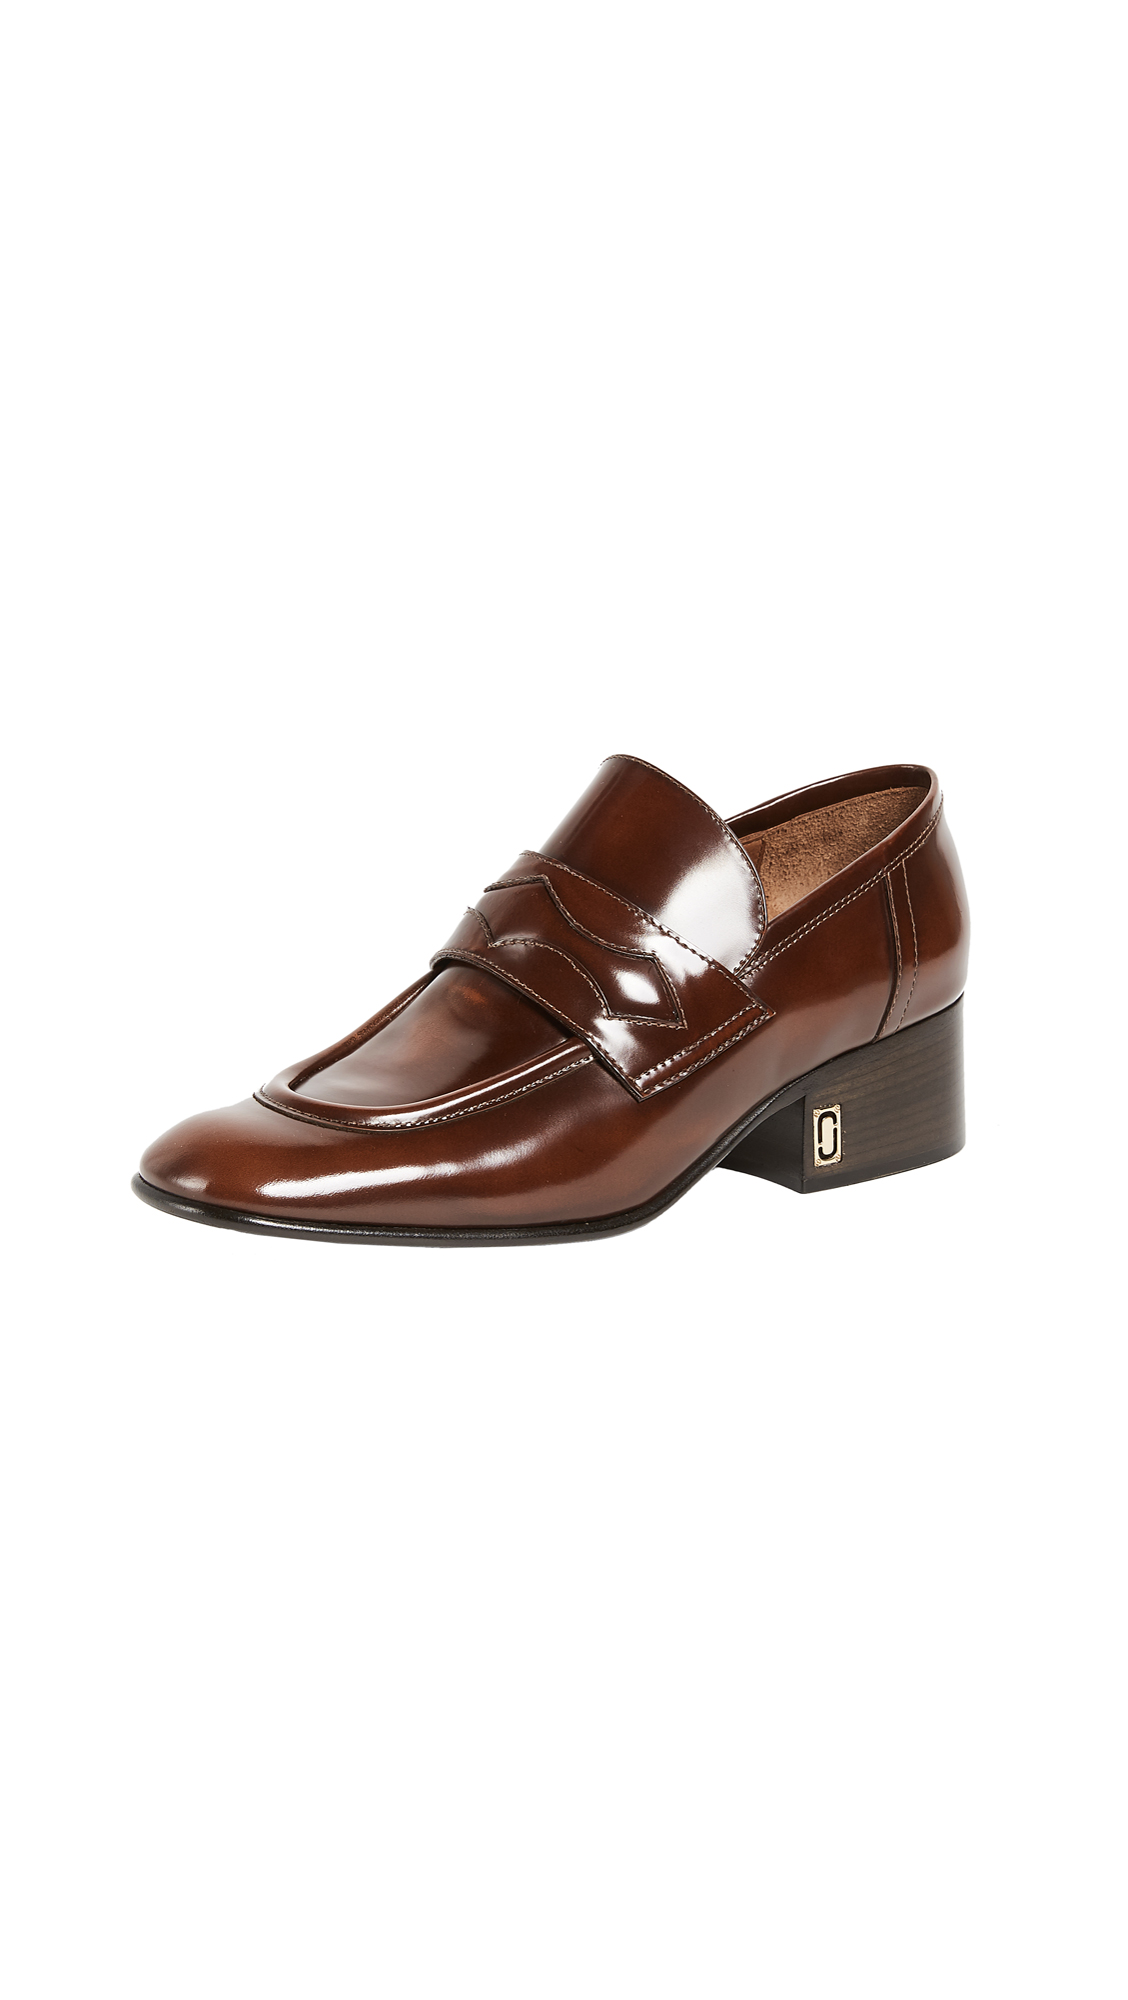 Marc Jacobs Marlene Loafers - Whiskey